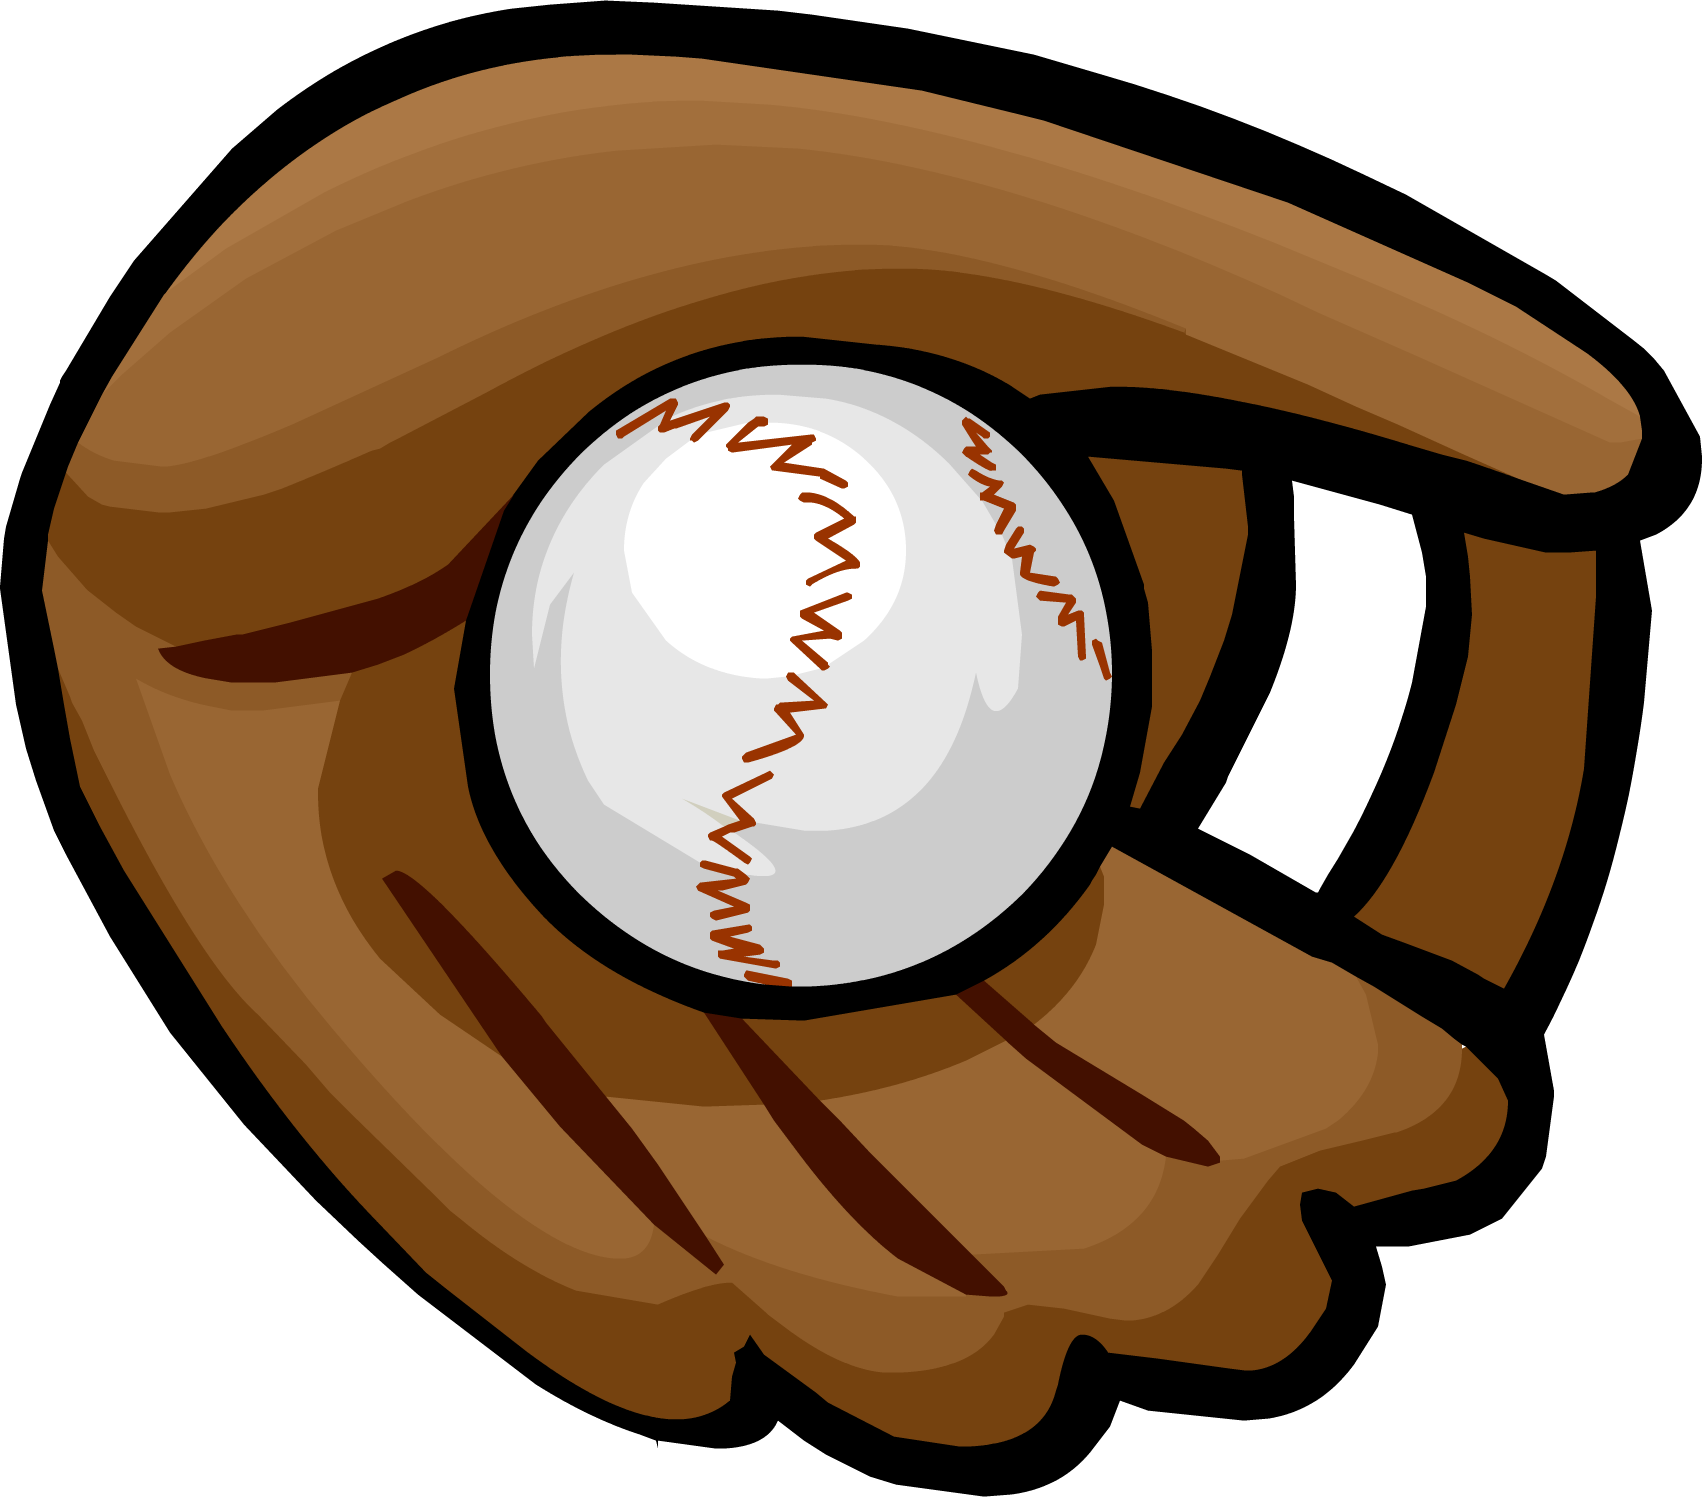 Game clipart baseball. Glove vector clip art